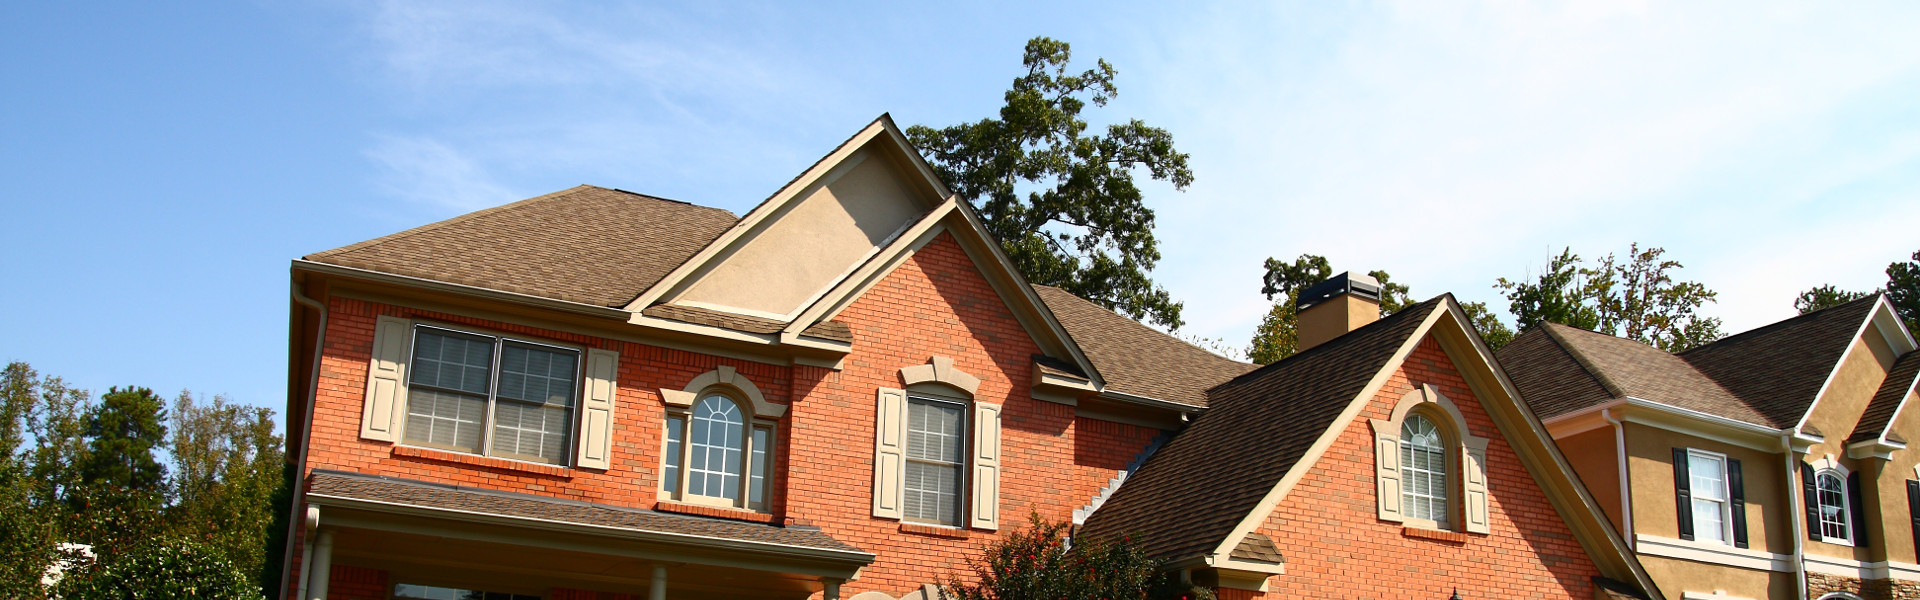 Residential Roofing Banner 2